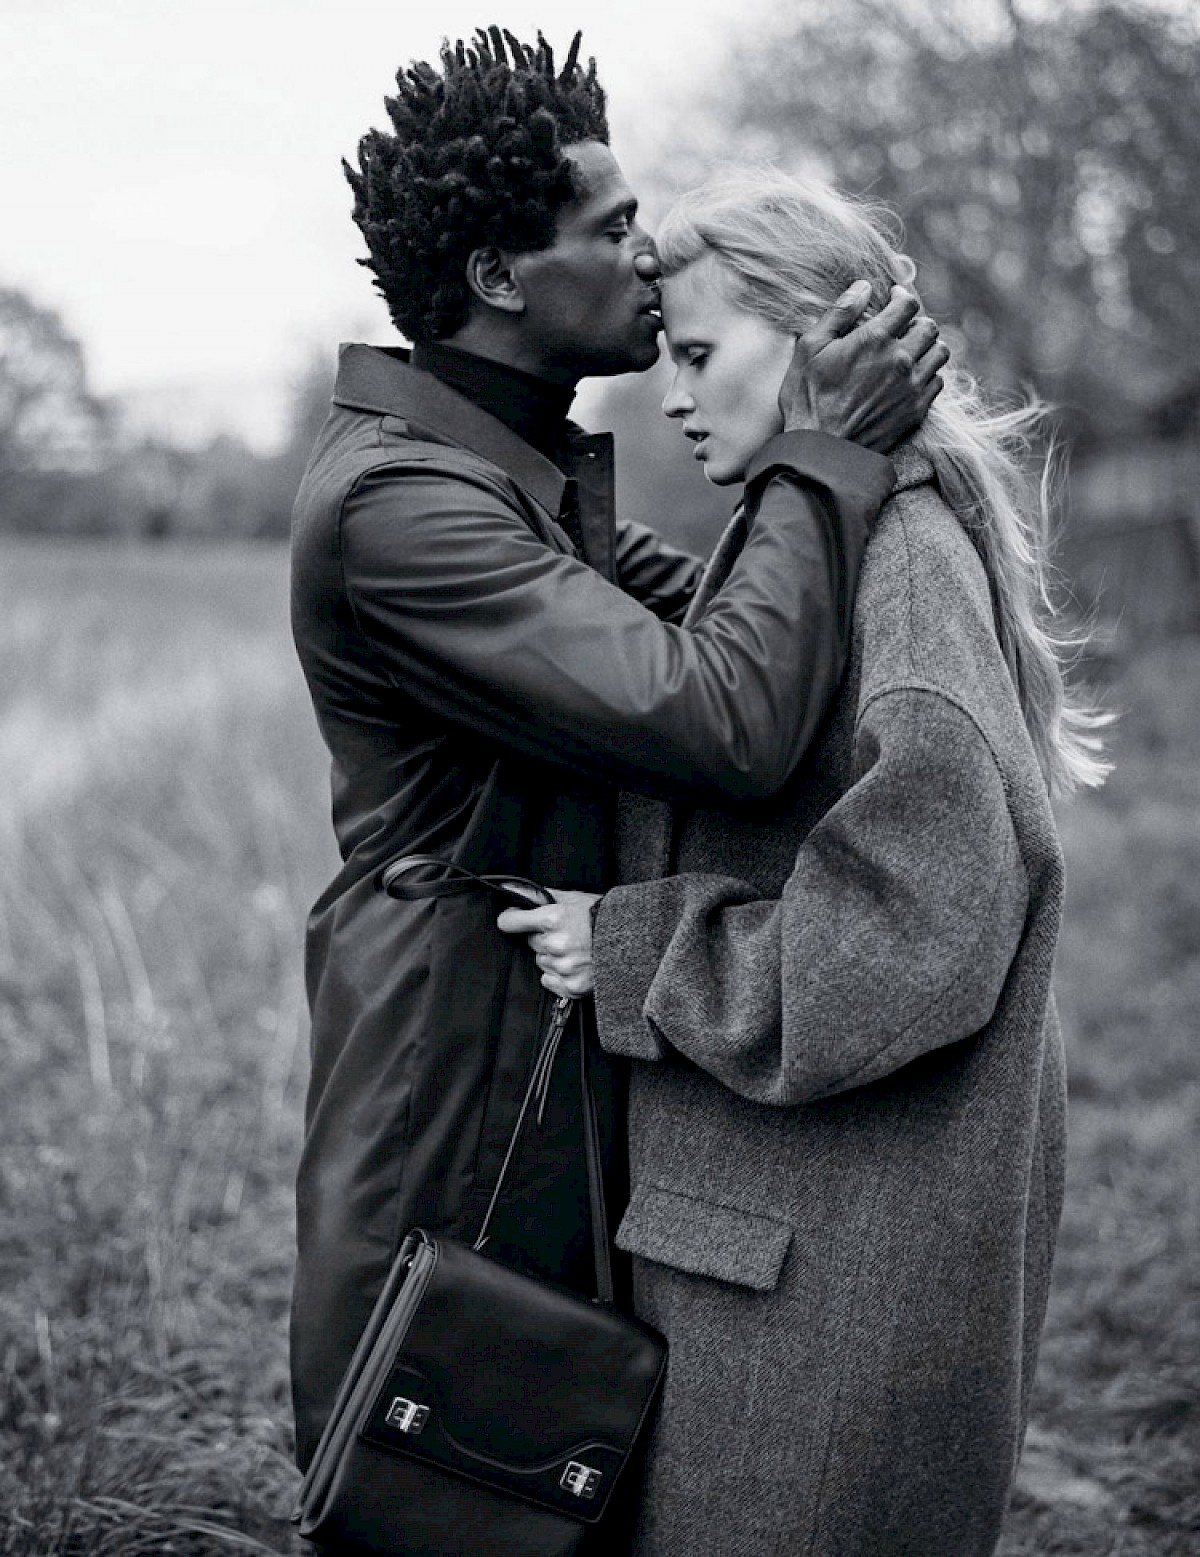 Lara Stone bruce weber b&w fashion photography timeless Vogue inspo textures body timeless moss lindbergh newton avedon demarchelier meisel Alaia Chanel vintage